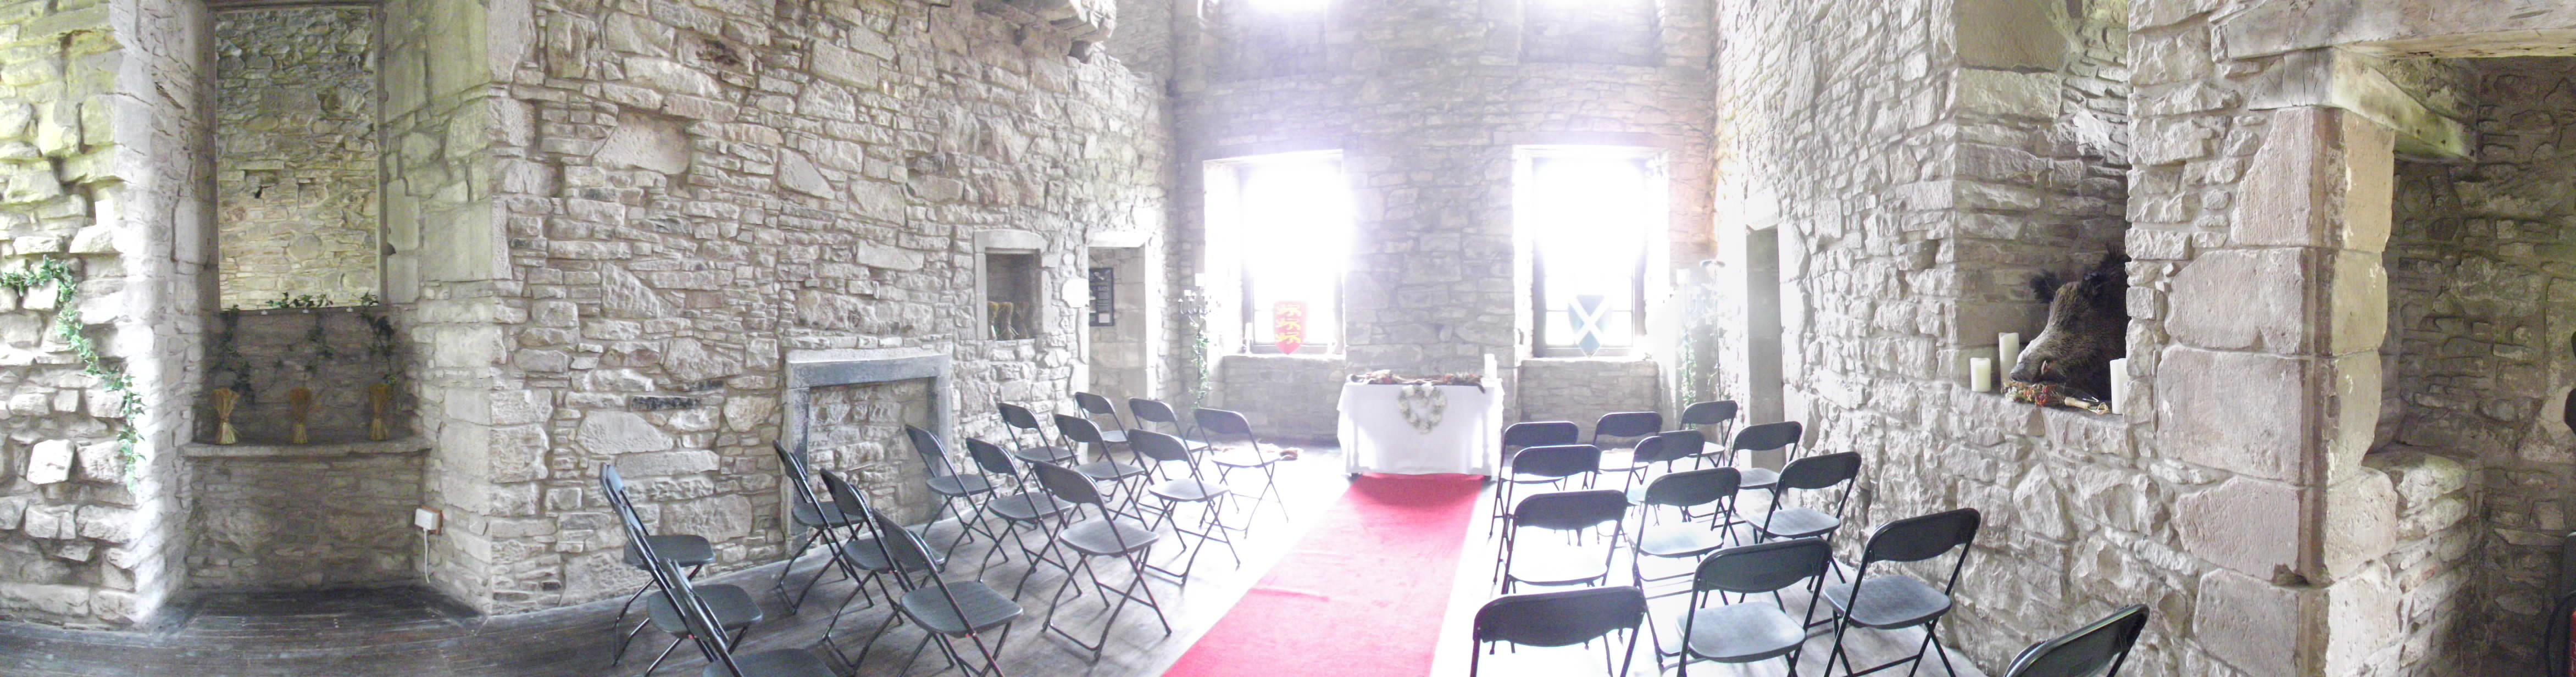 A panorama of the medieval/hunting themed wedding | Huntingtower ...